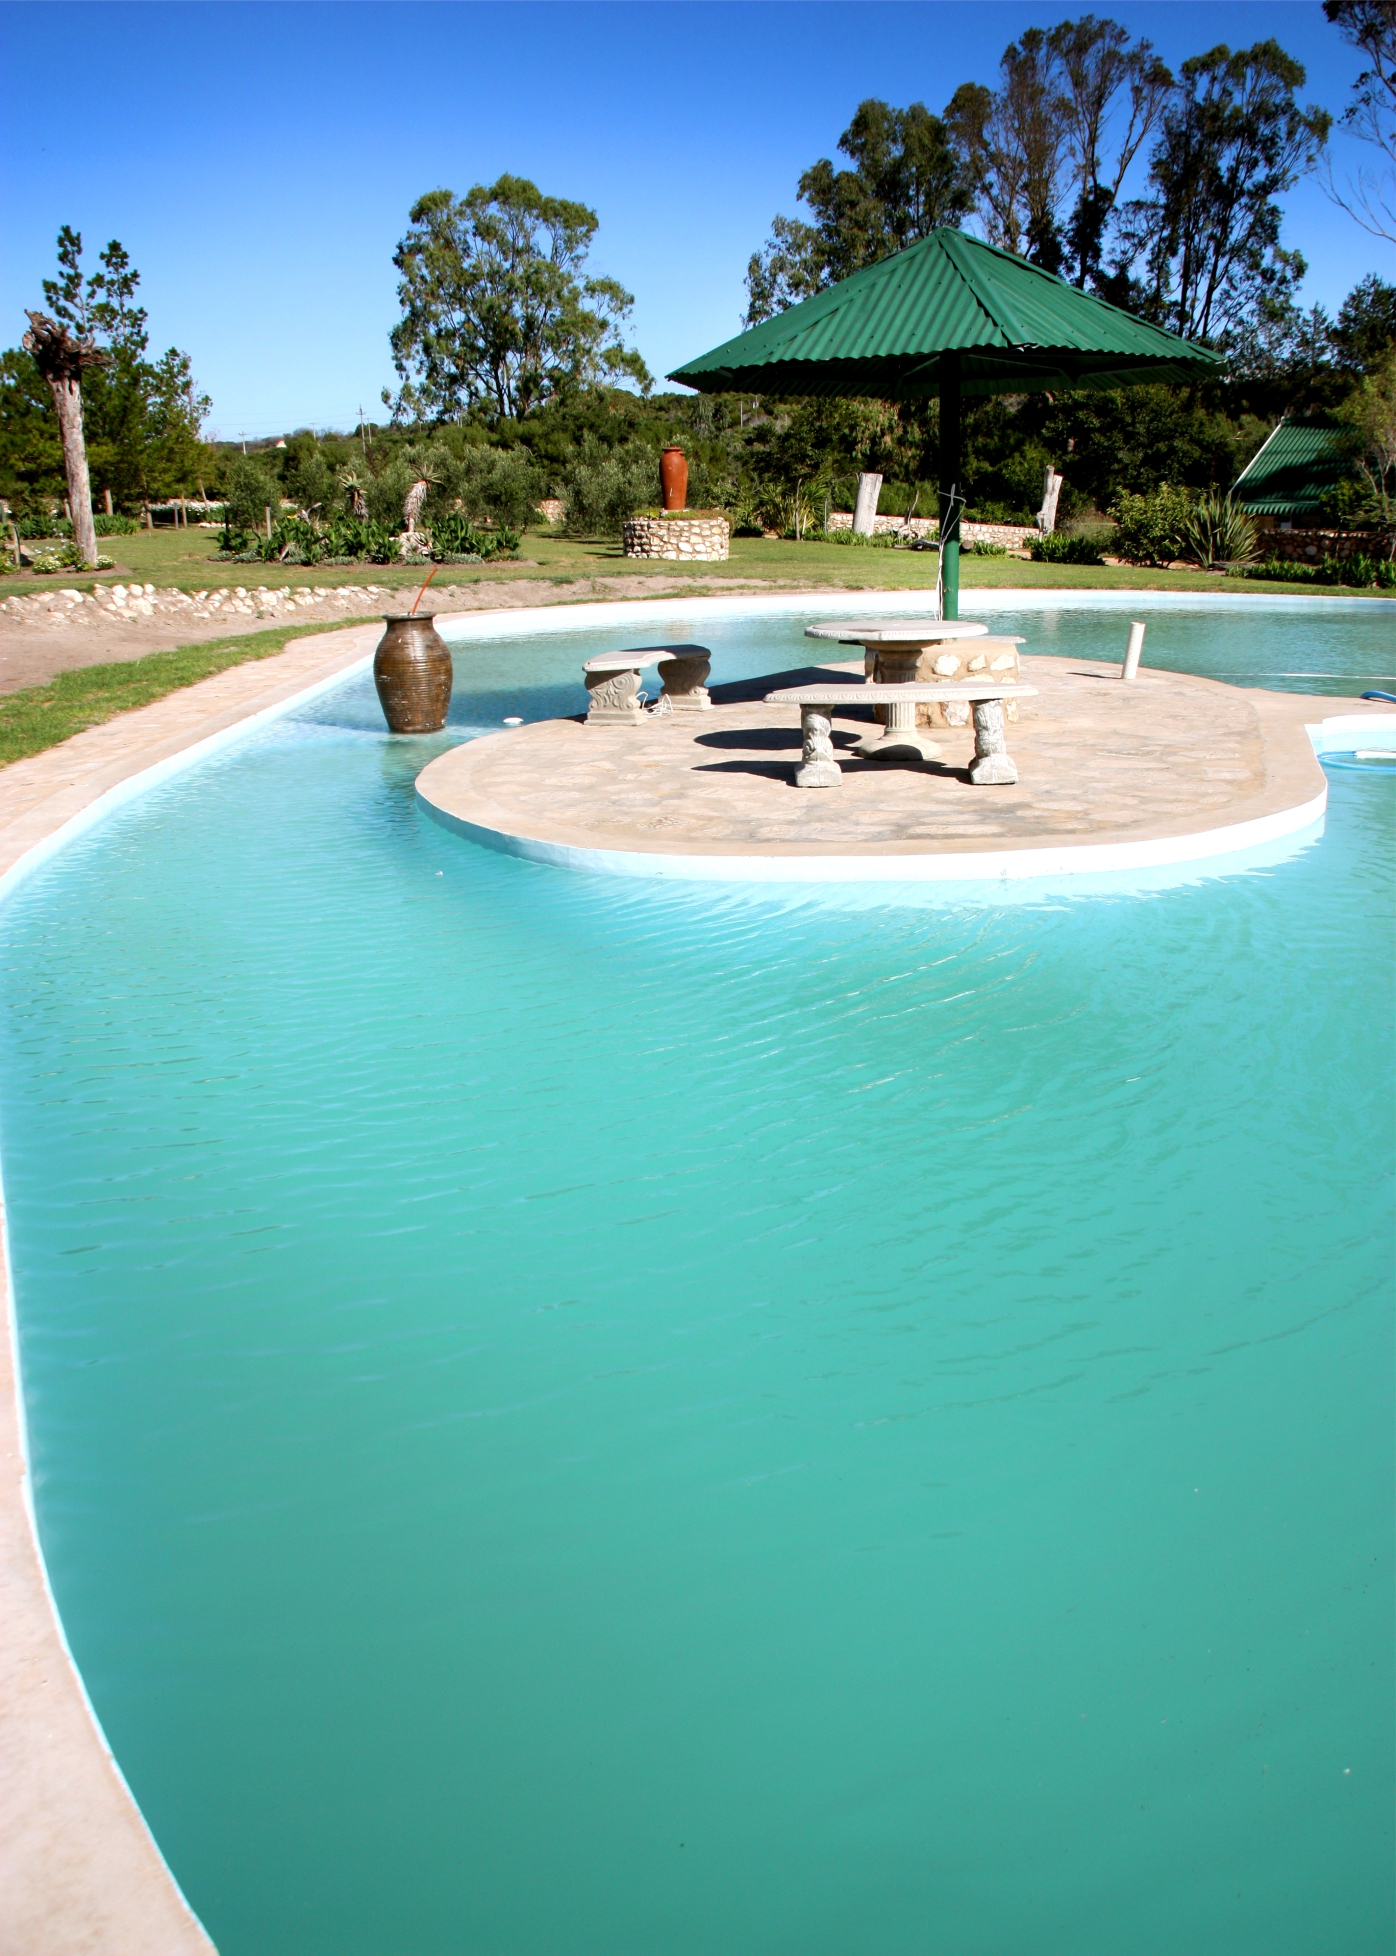 Stilbaai South Africa  City pictures : Botterkloof Resort Stilbaai, South Africa Hotel Reviews ...